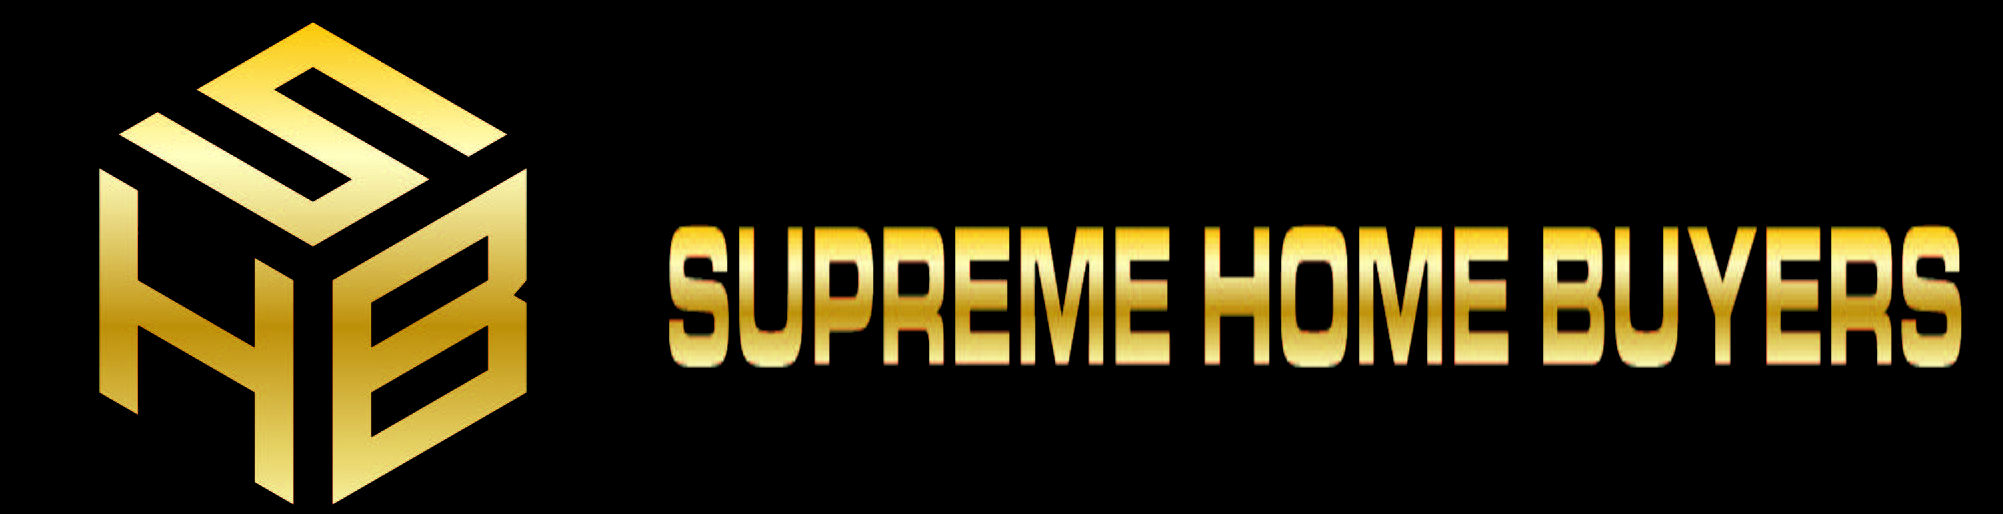 Supreme Home Buyer